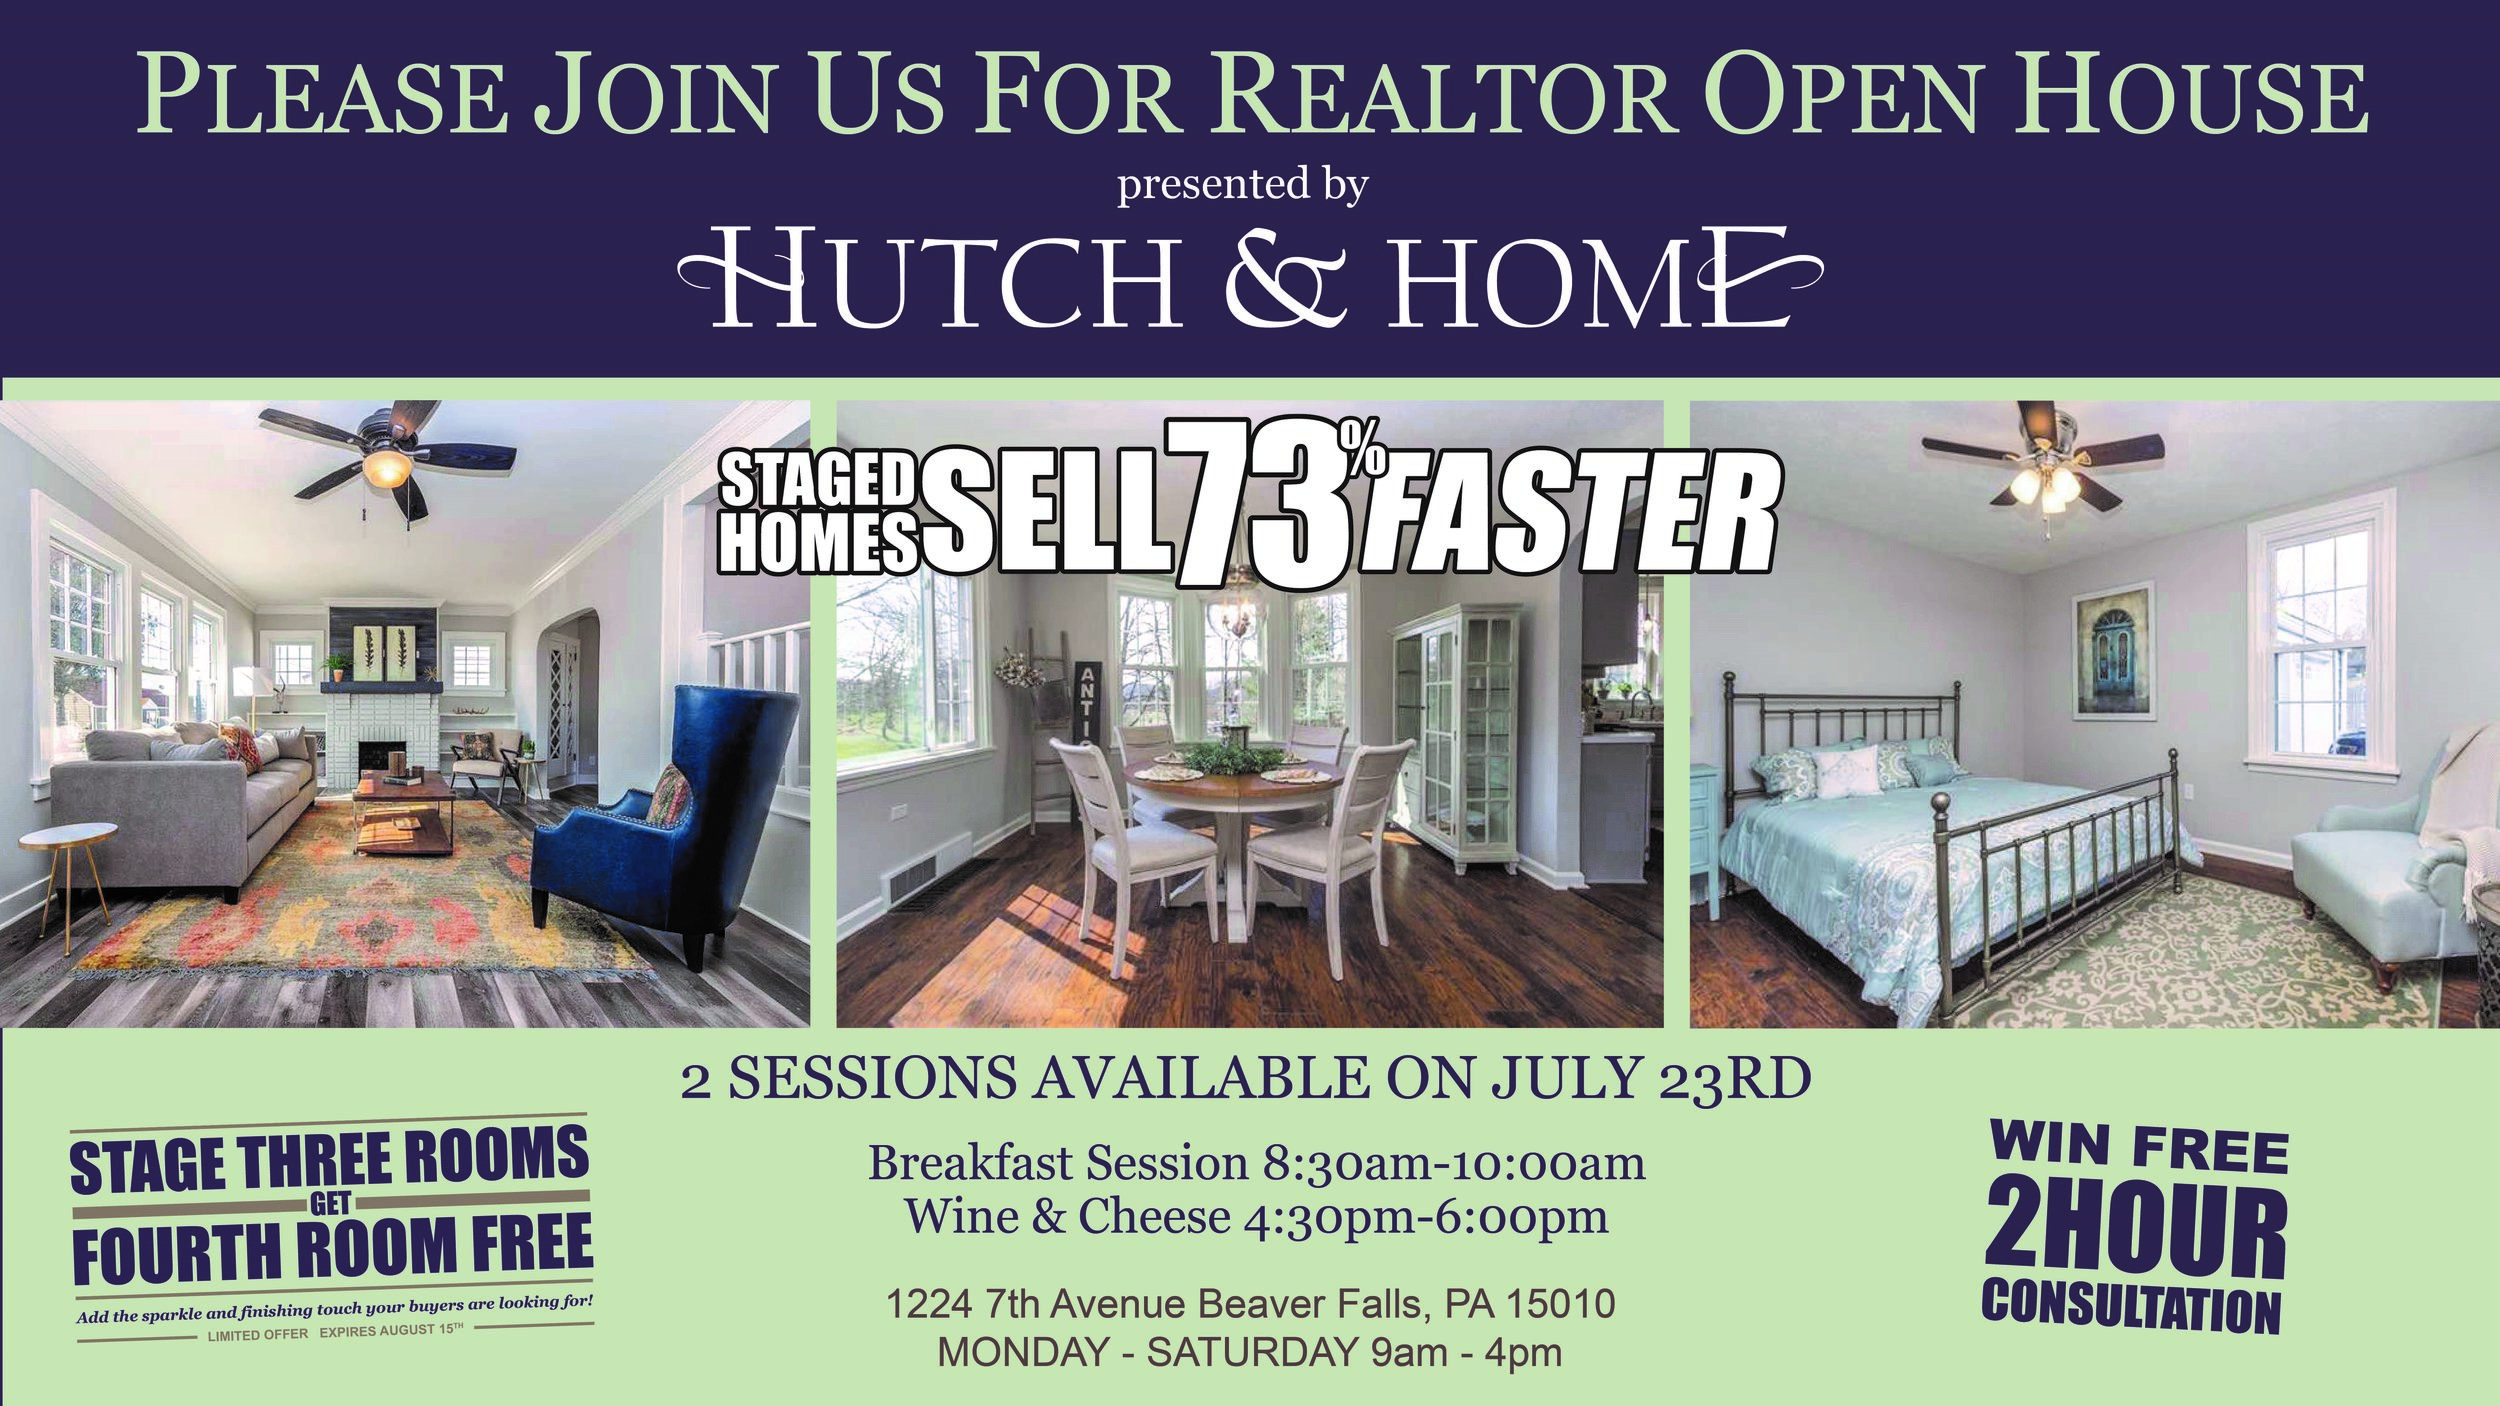 Hutch & Home Realtor Open House.jpg